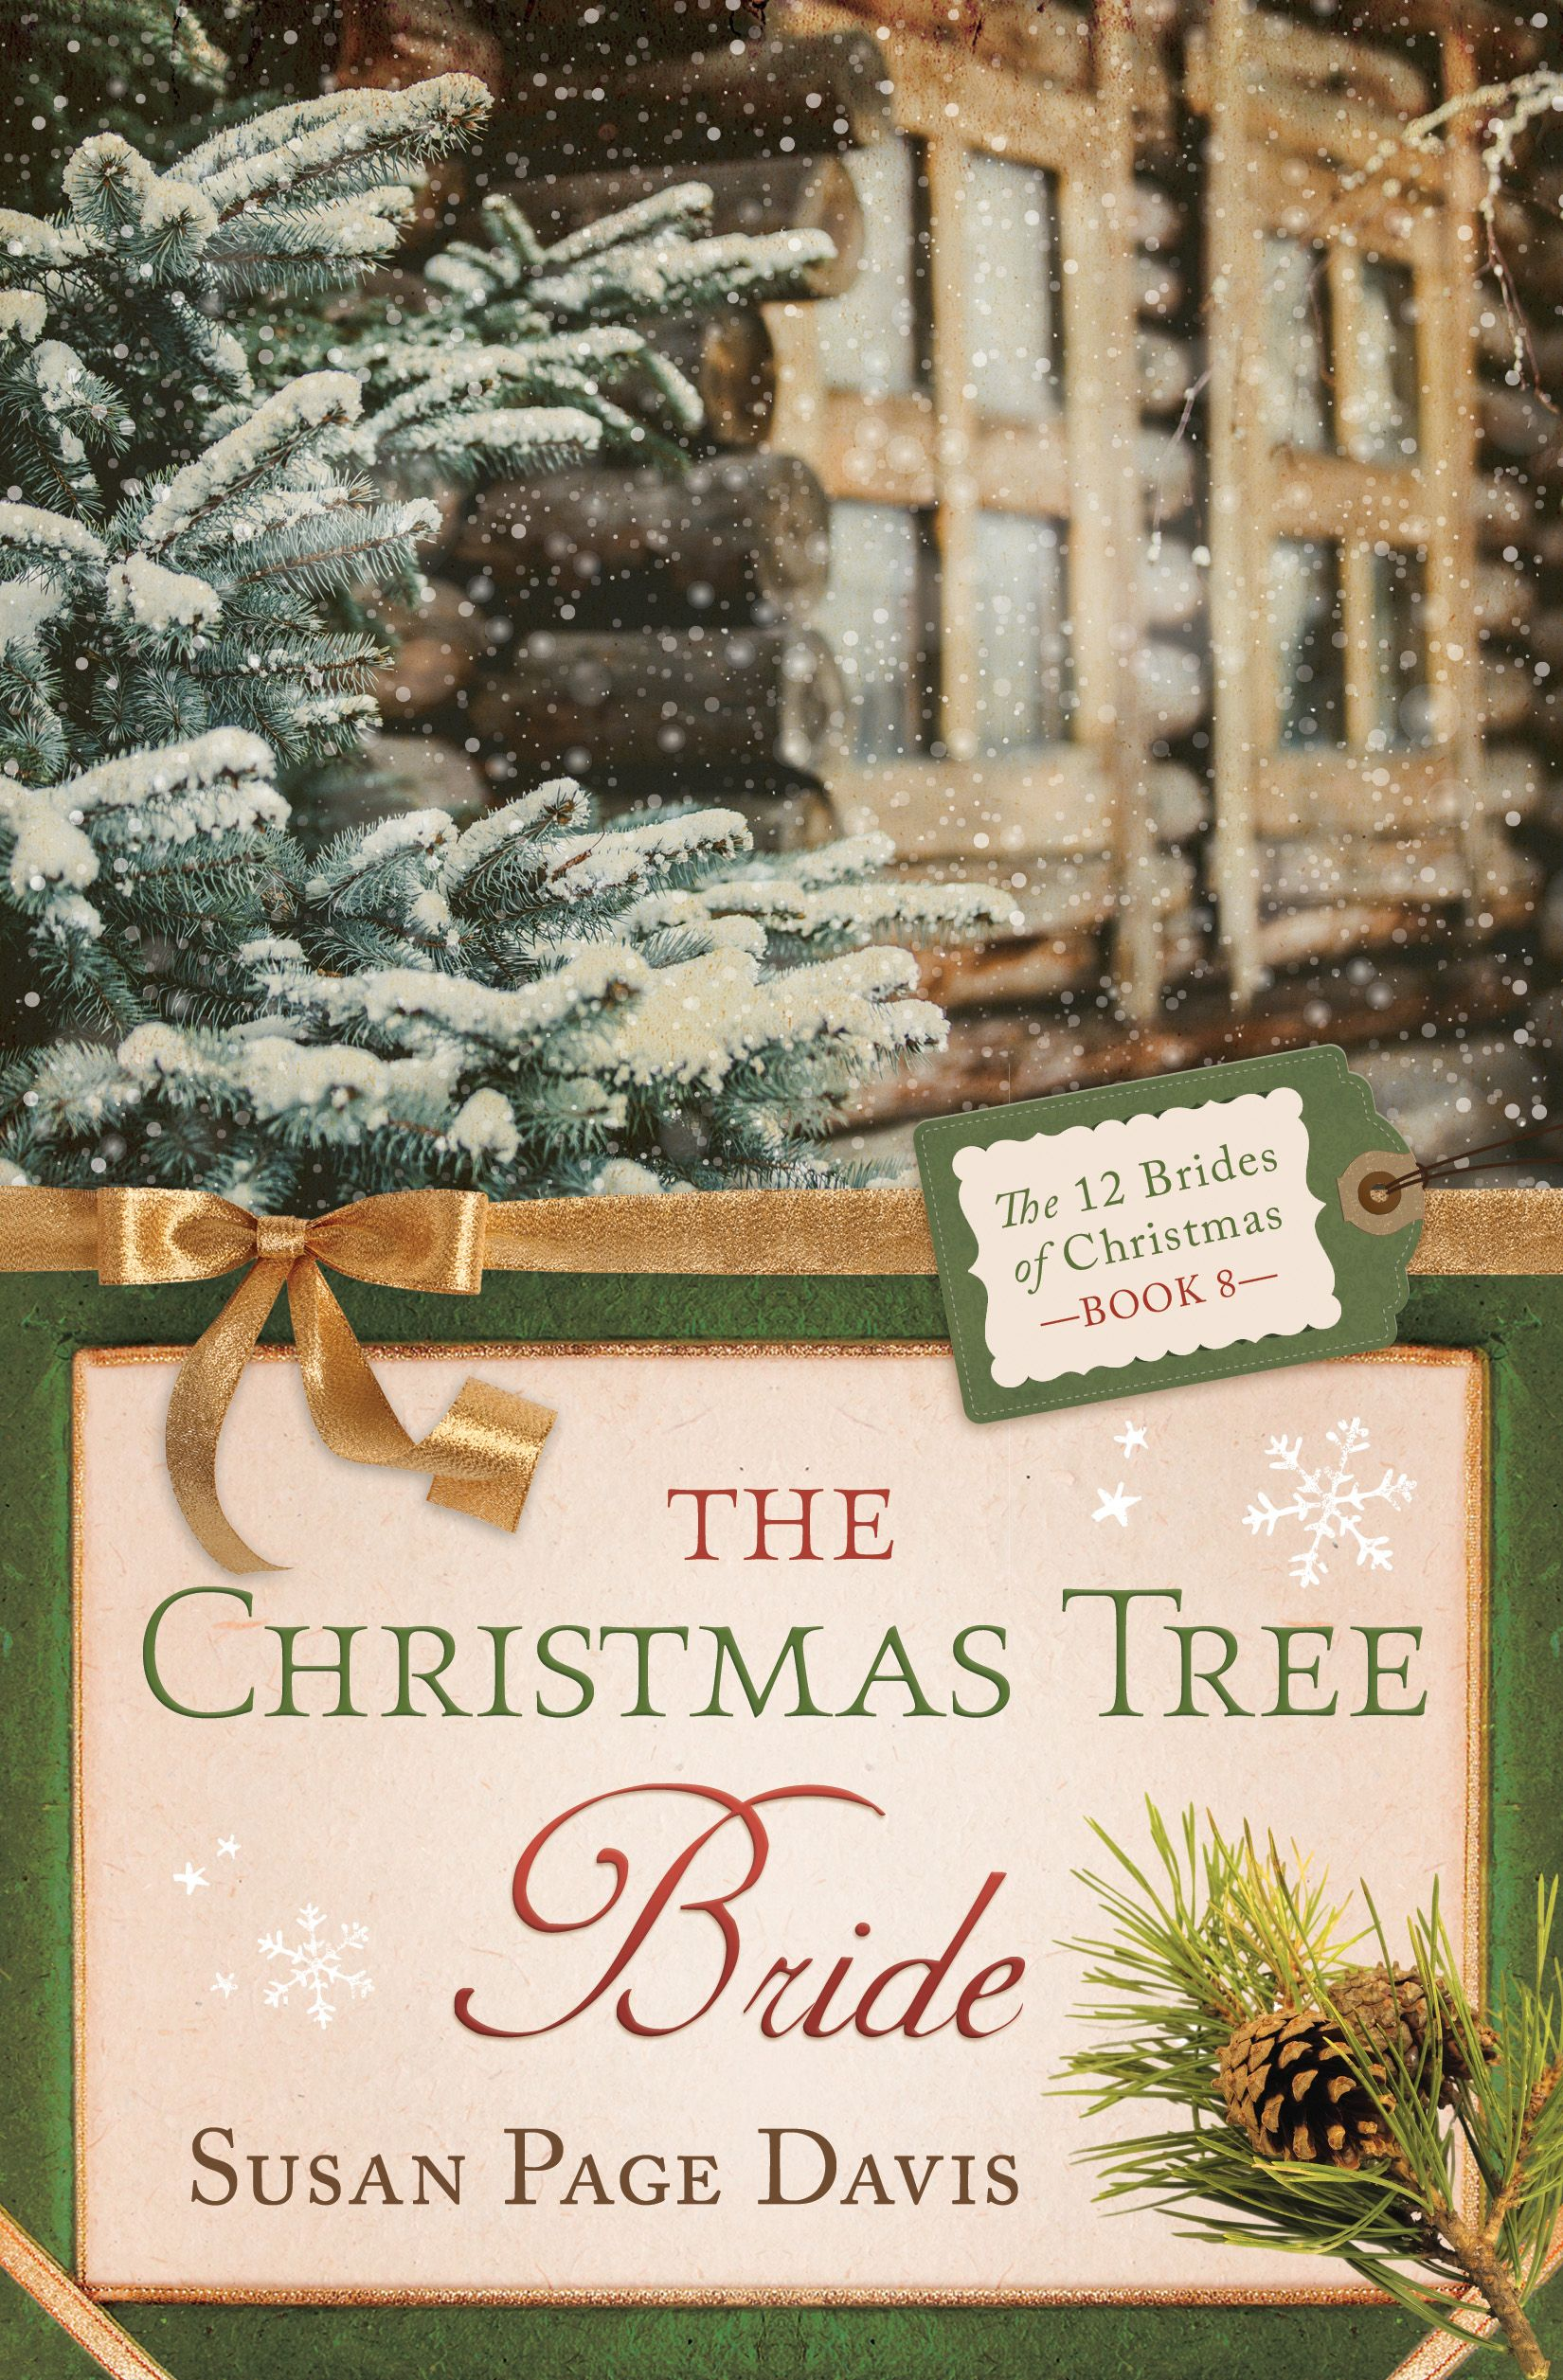 Pin by Laura Hilton on Favorite books of 2014 | Christmas books, Books,  Books to Read